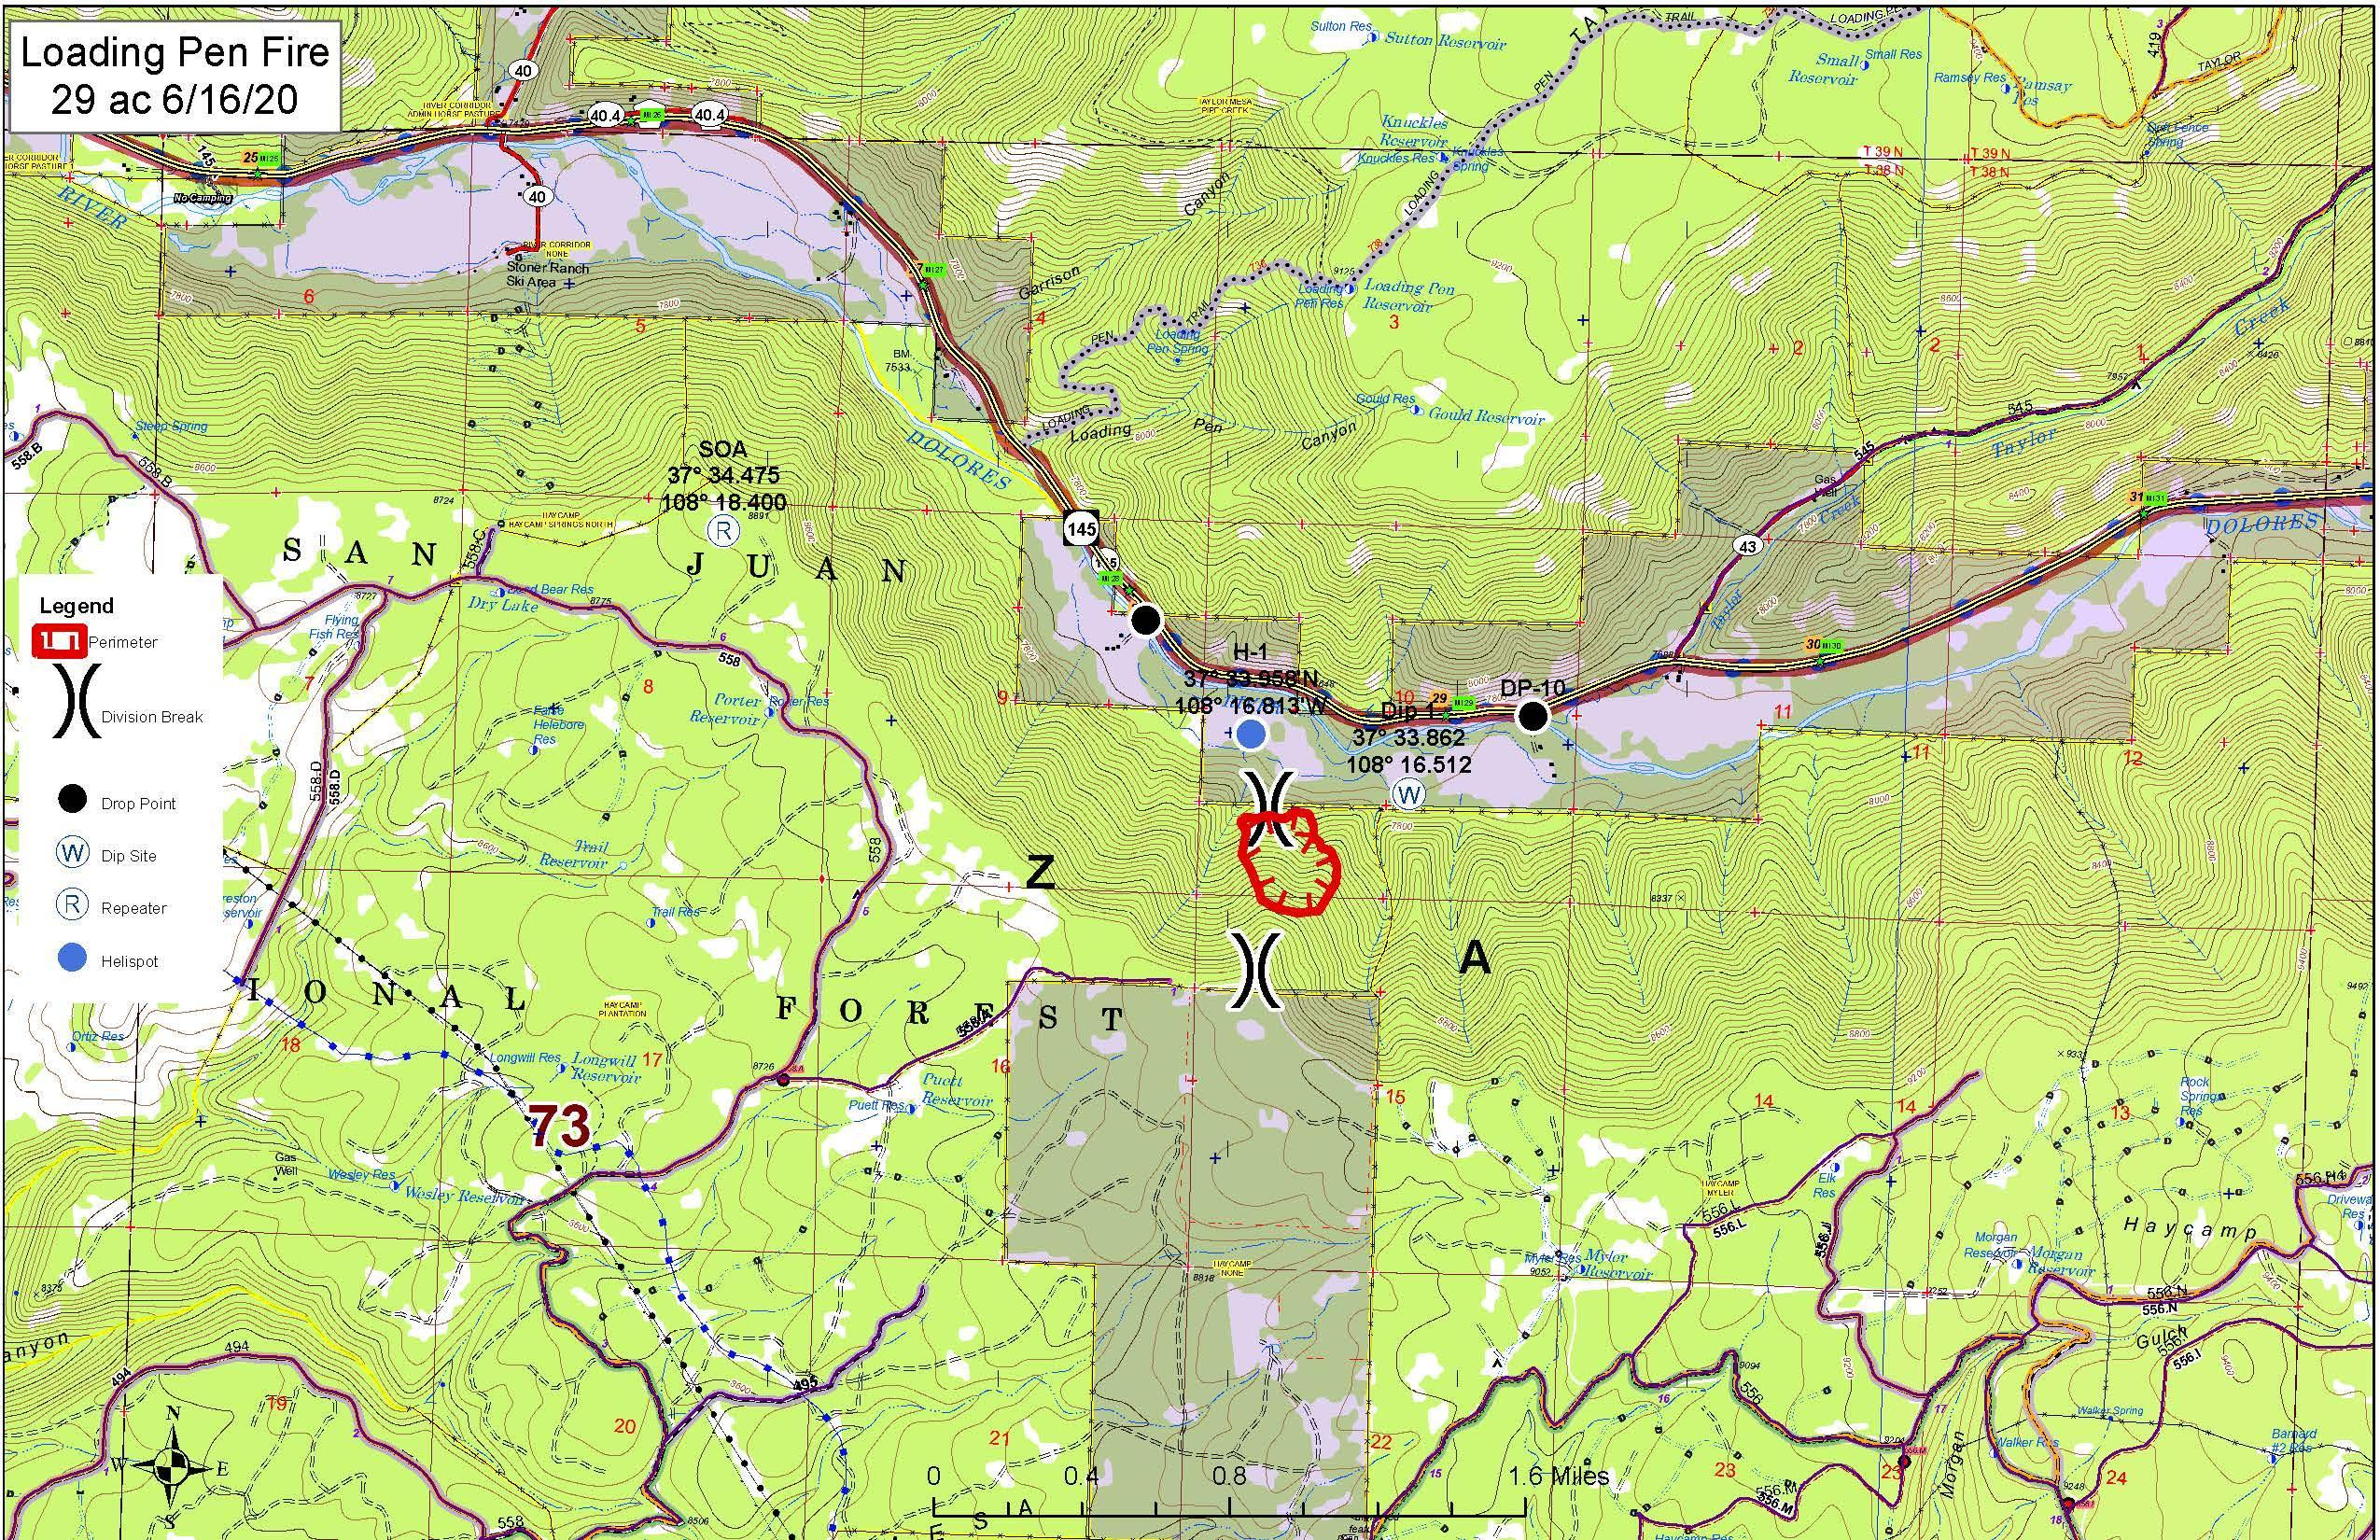 A map of the Loading Pen Fire, Colorado on June 16, 2020